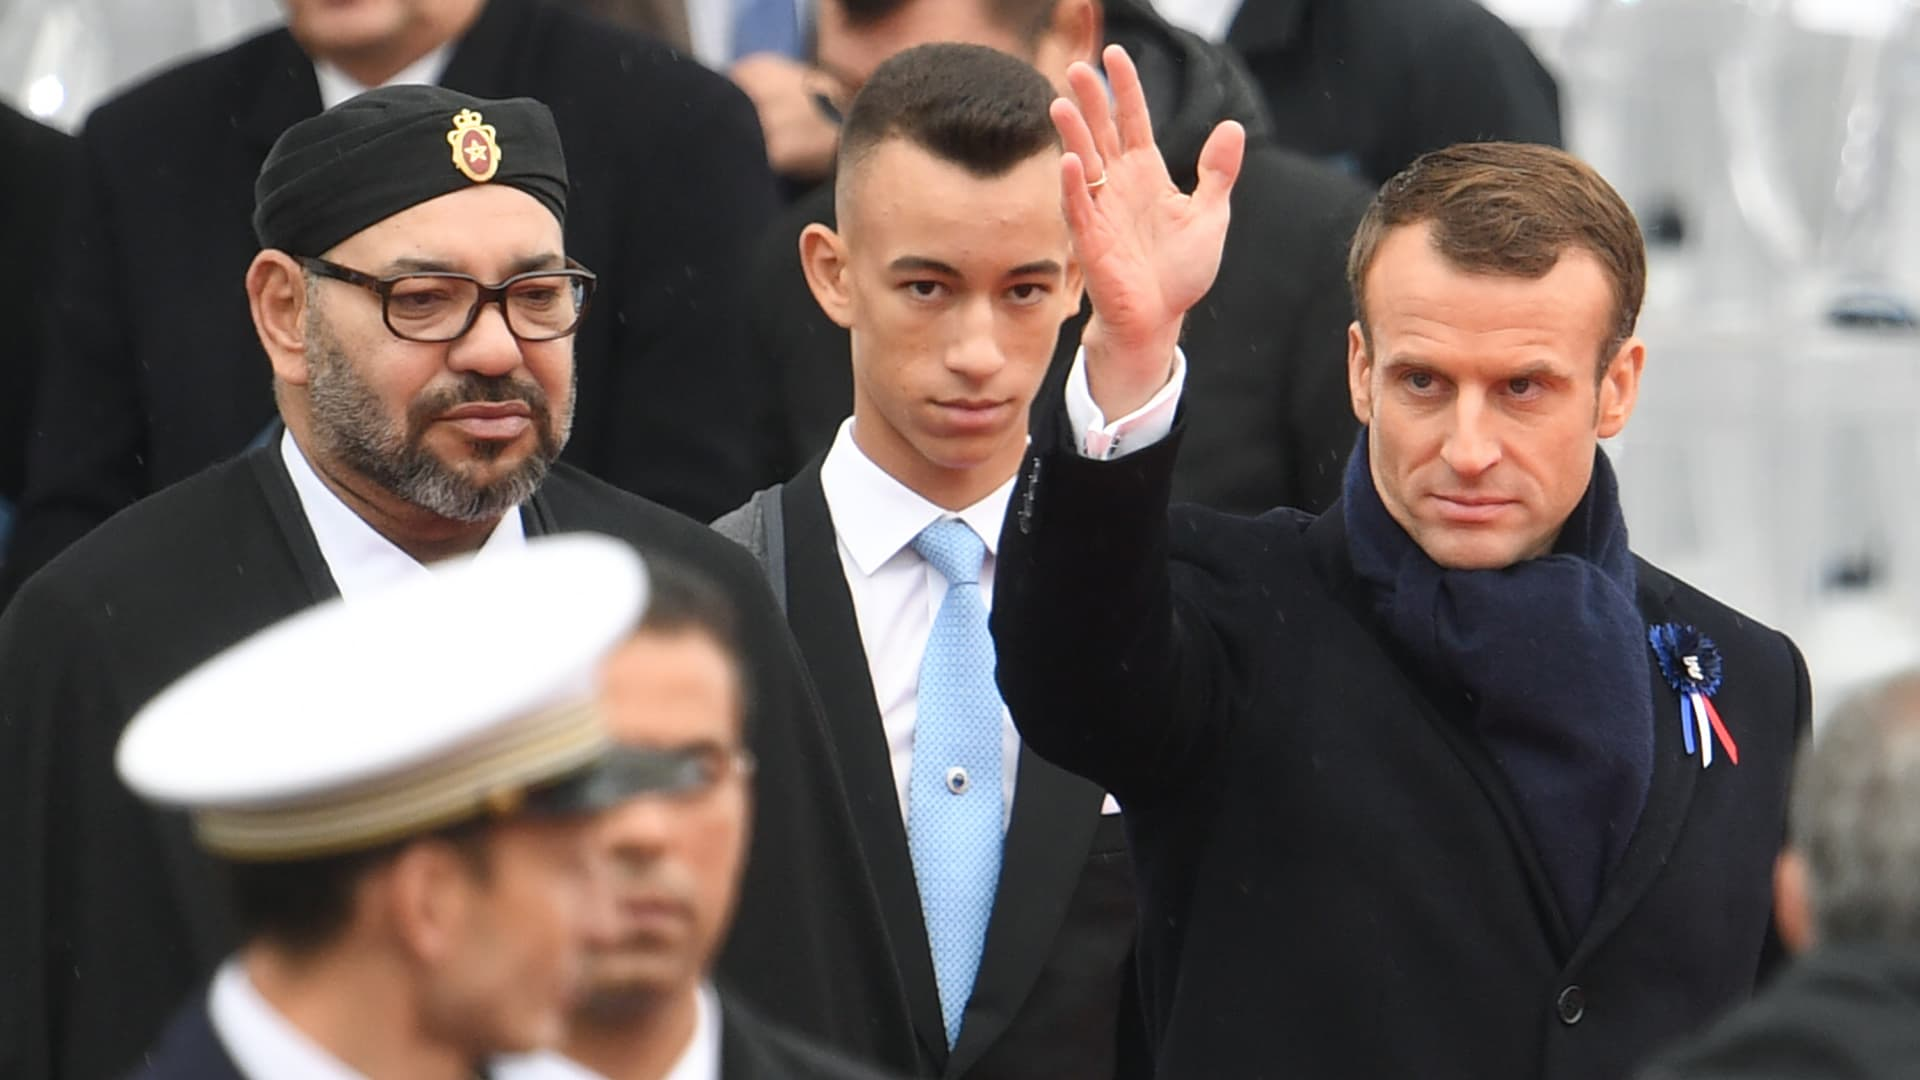 PARIS - French President Emmanuel Macron (R) waves as he leaves with Morocco's Prince Moulay Hassan (C) nd Moroccan King Mohammed VI (L) after attending a ceremony at the Arc de Triomphe in Paris on November 11, 2018.